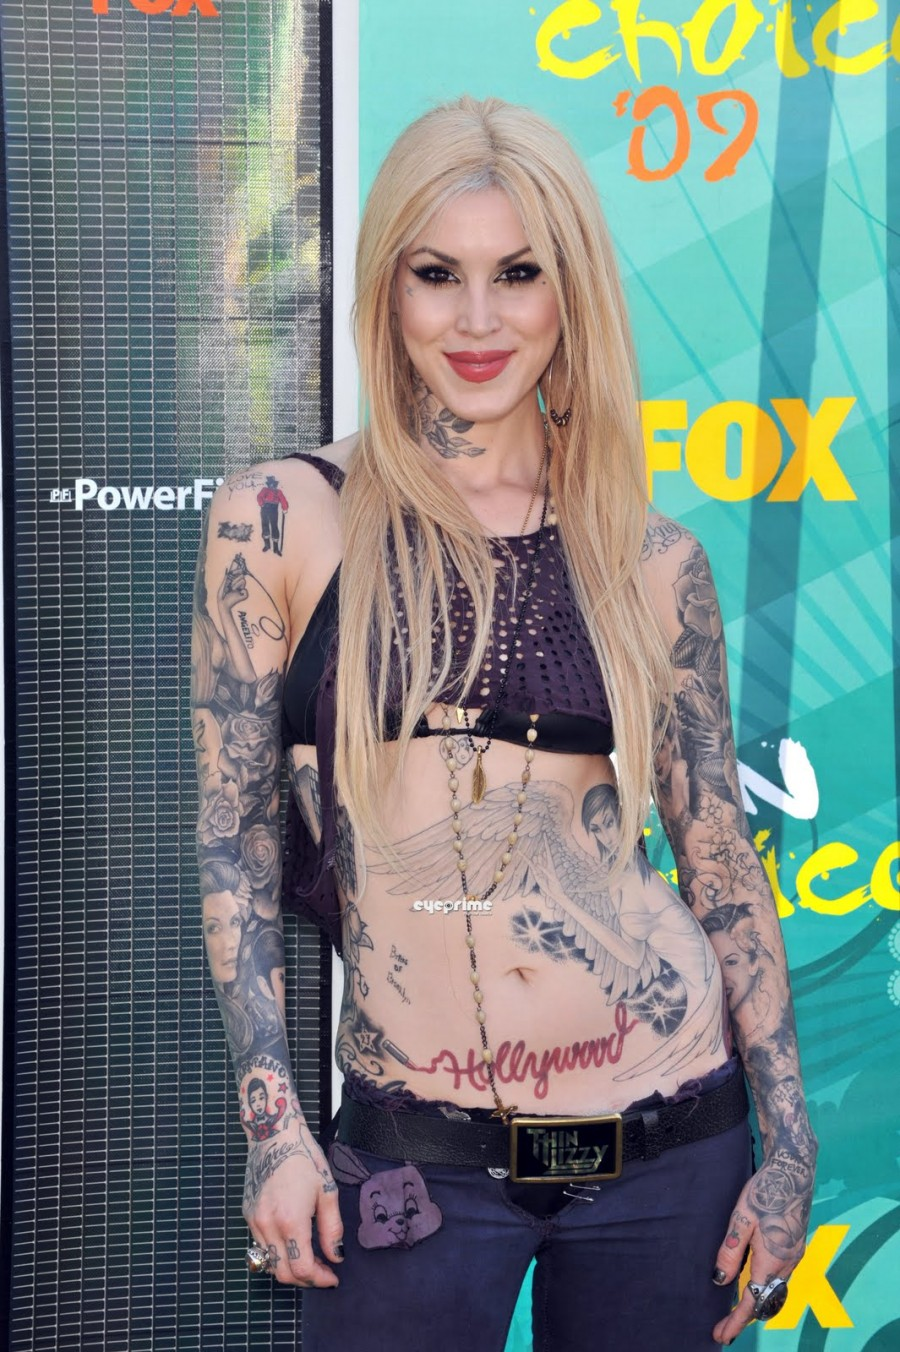 Kat Von D is Most Famous and Best Tattoo Artist